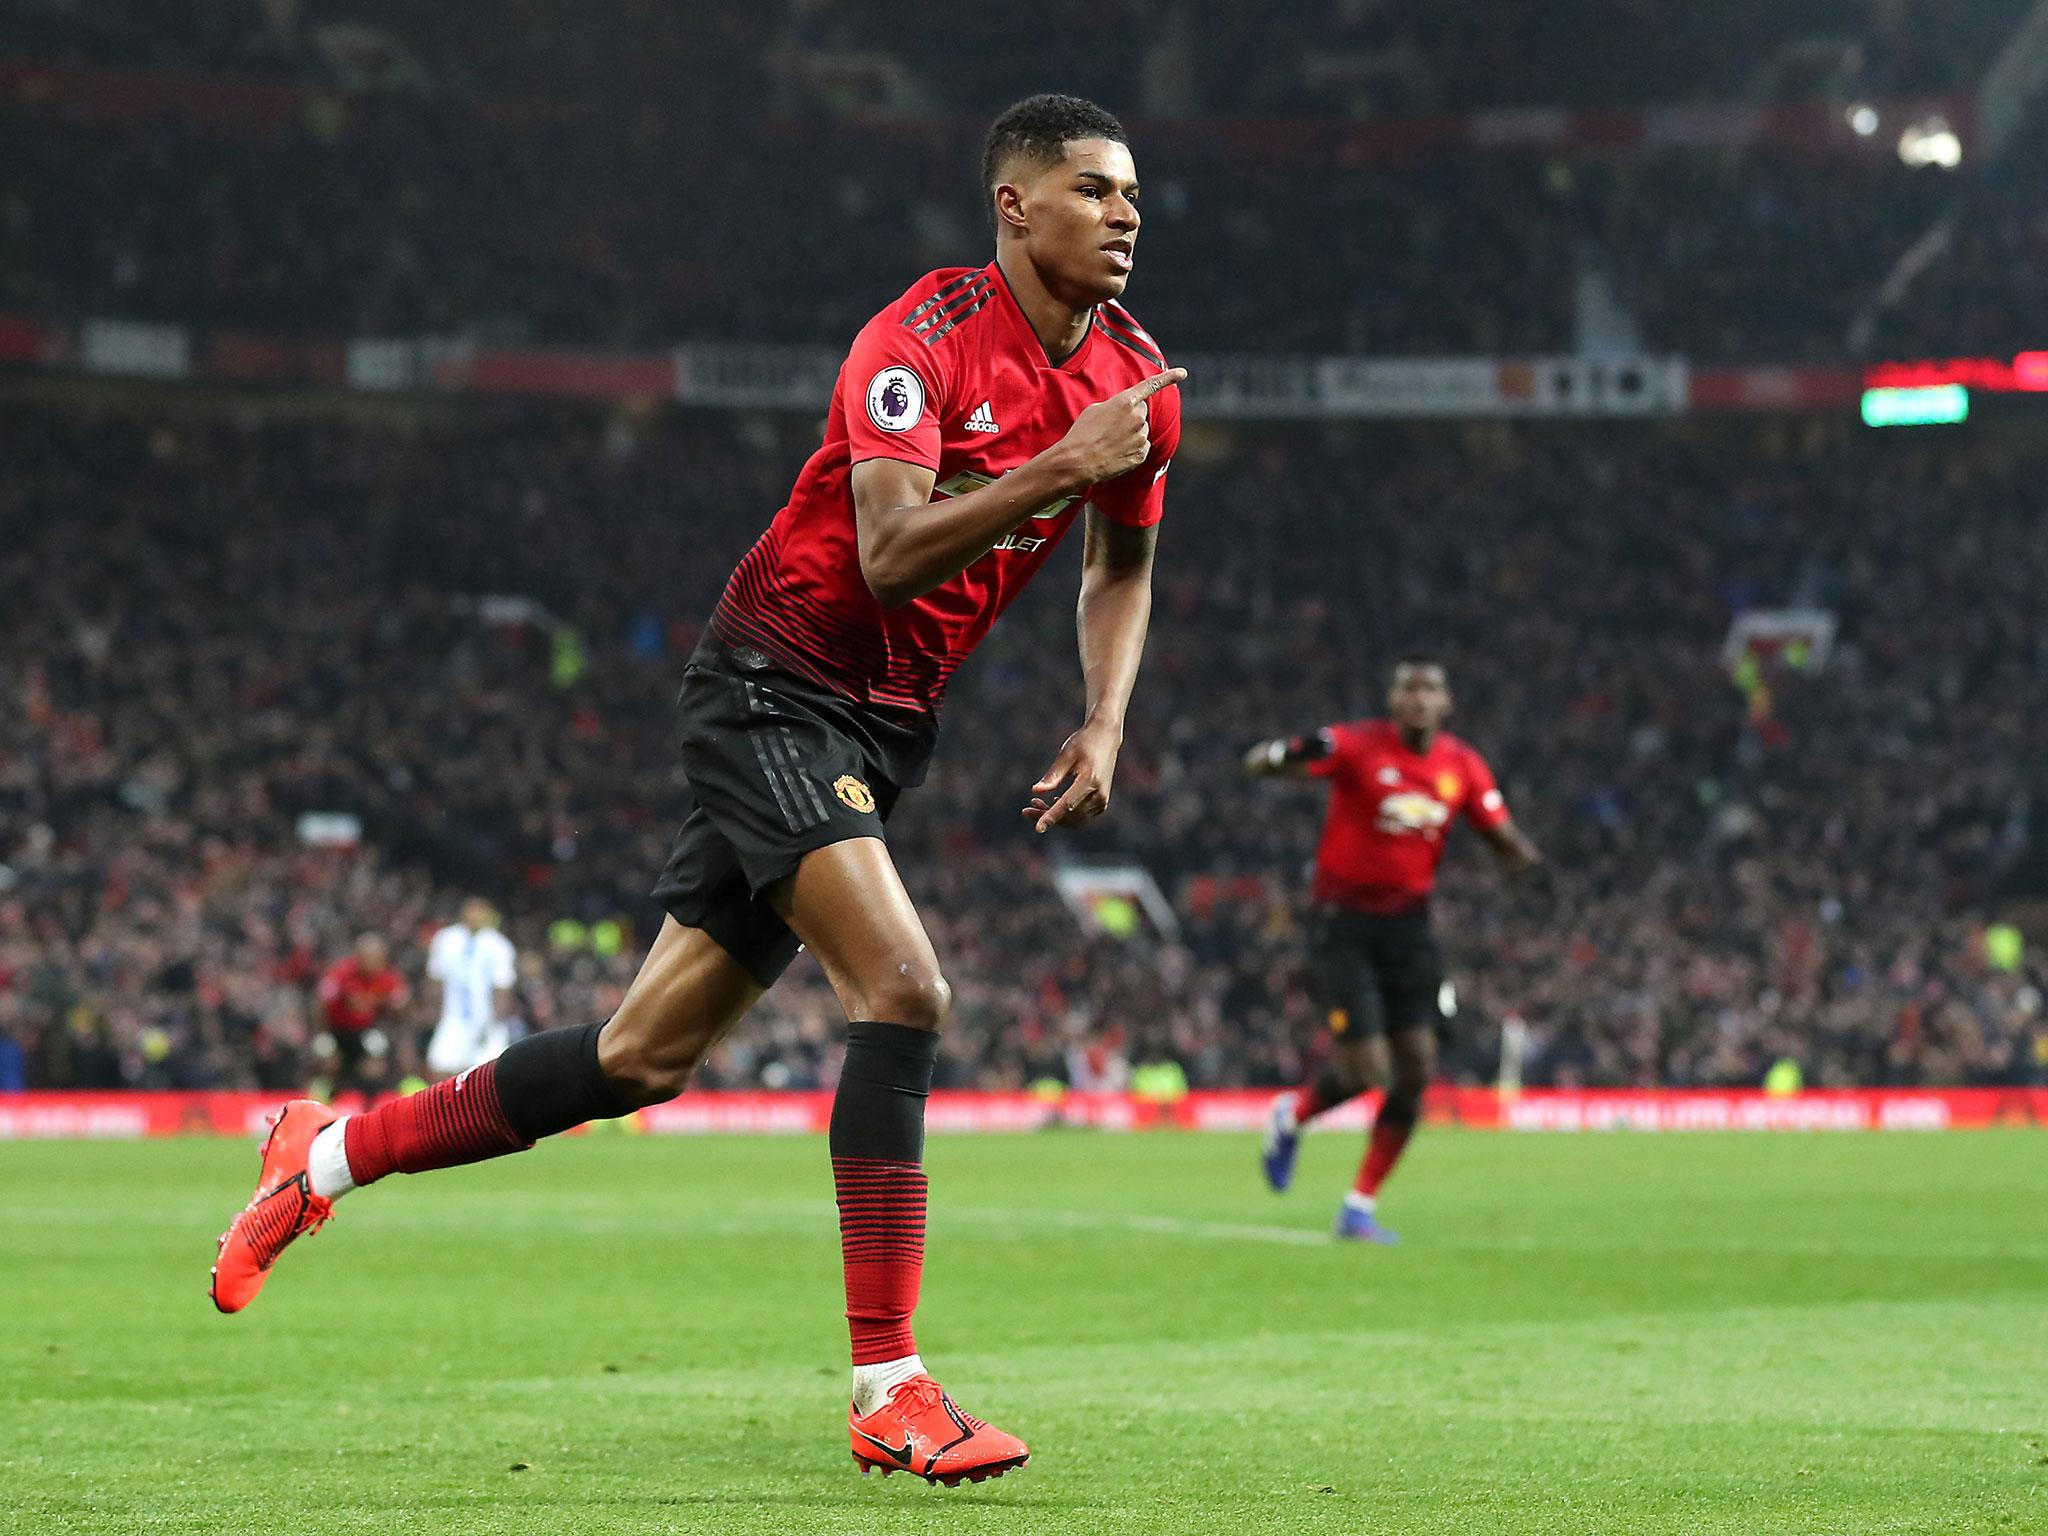 Manchester United Vs Brighton Marcus Rashford S Solo Goal Sees Ole Gunnar Solskjaer Equal League Win Record The Independent The Independent